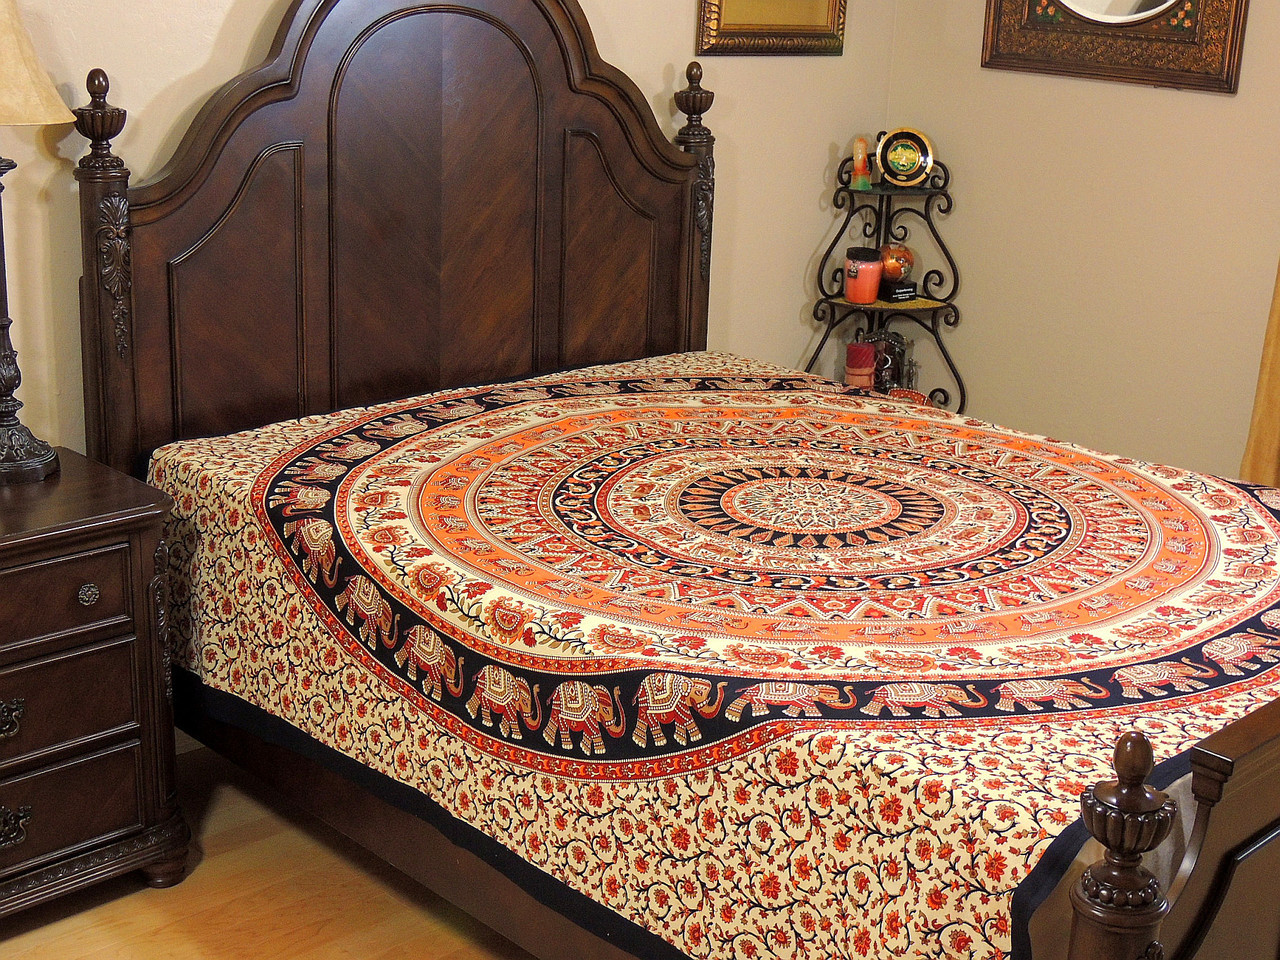 Cream Orange Mandala Tapestry Bed Sheet   Cotton Elephant Bedding Linens ~  Full.